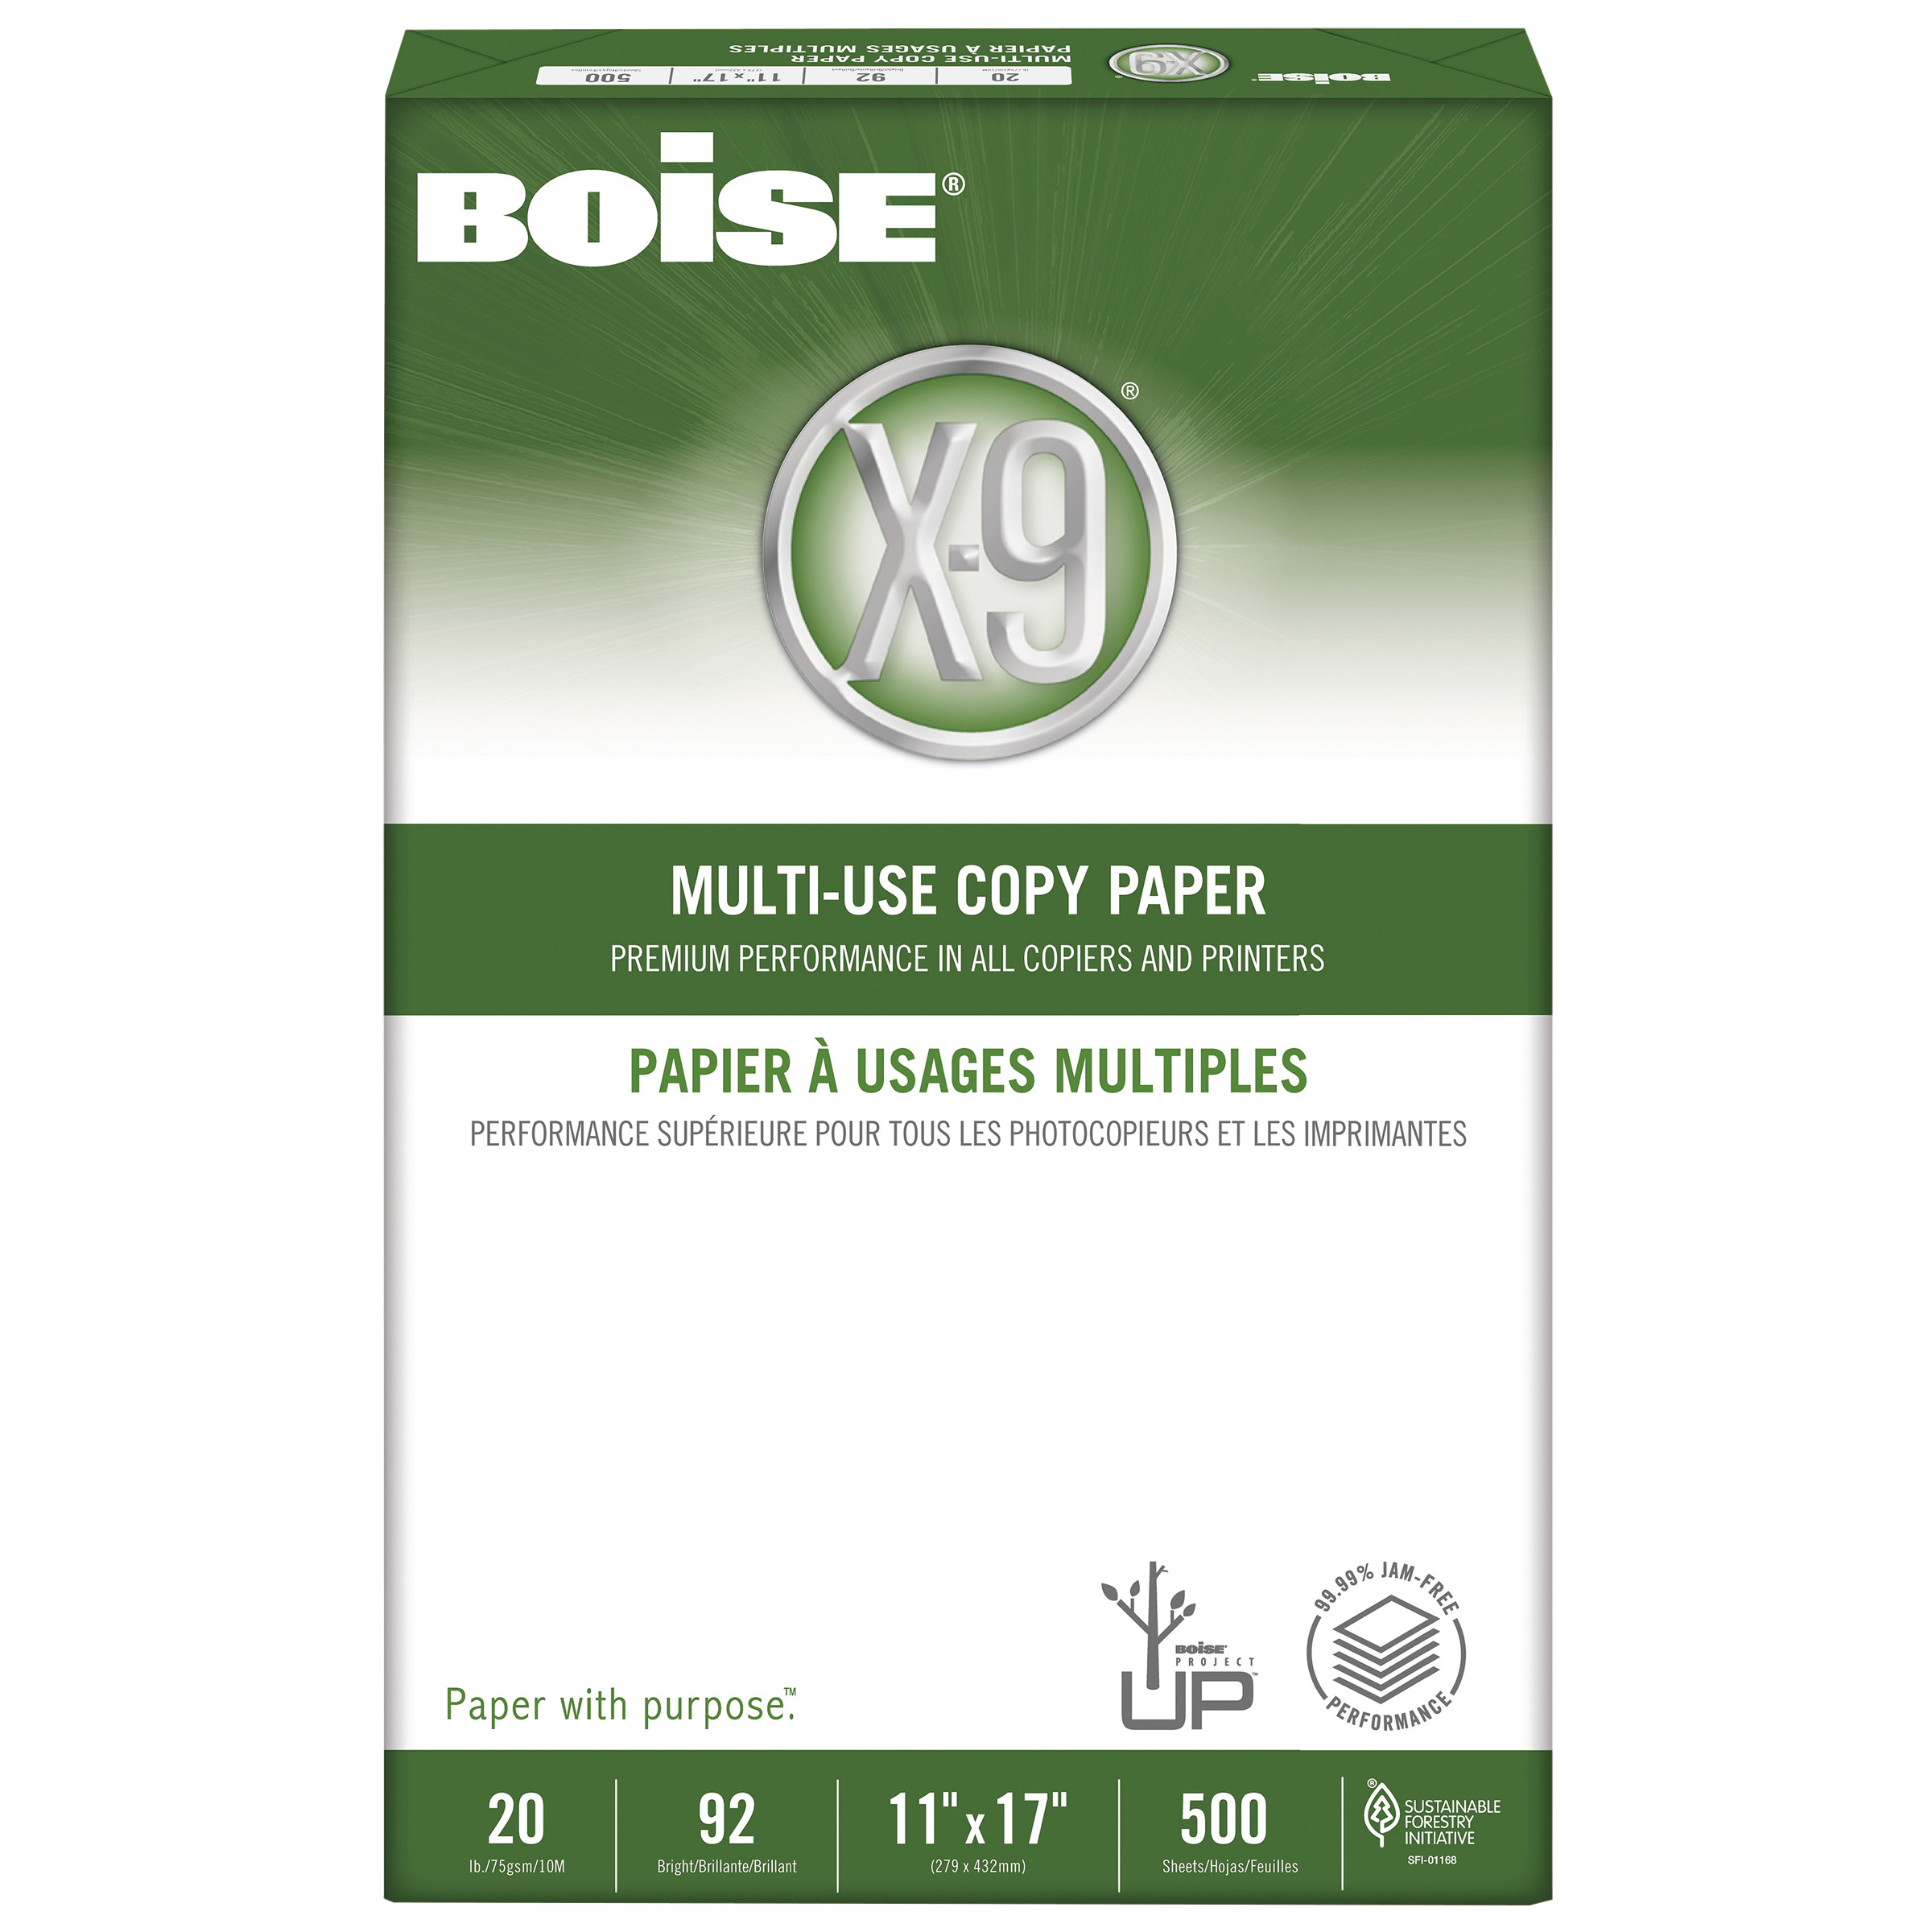 BOISE 0X9007 Multi-Use Copy Paper,11x17,White,PK5 by Boise